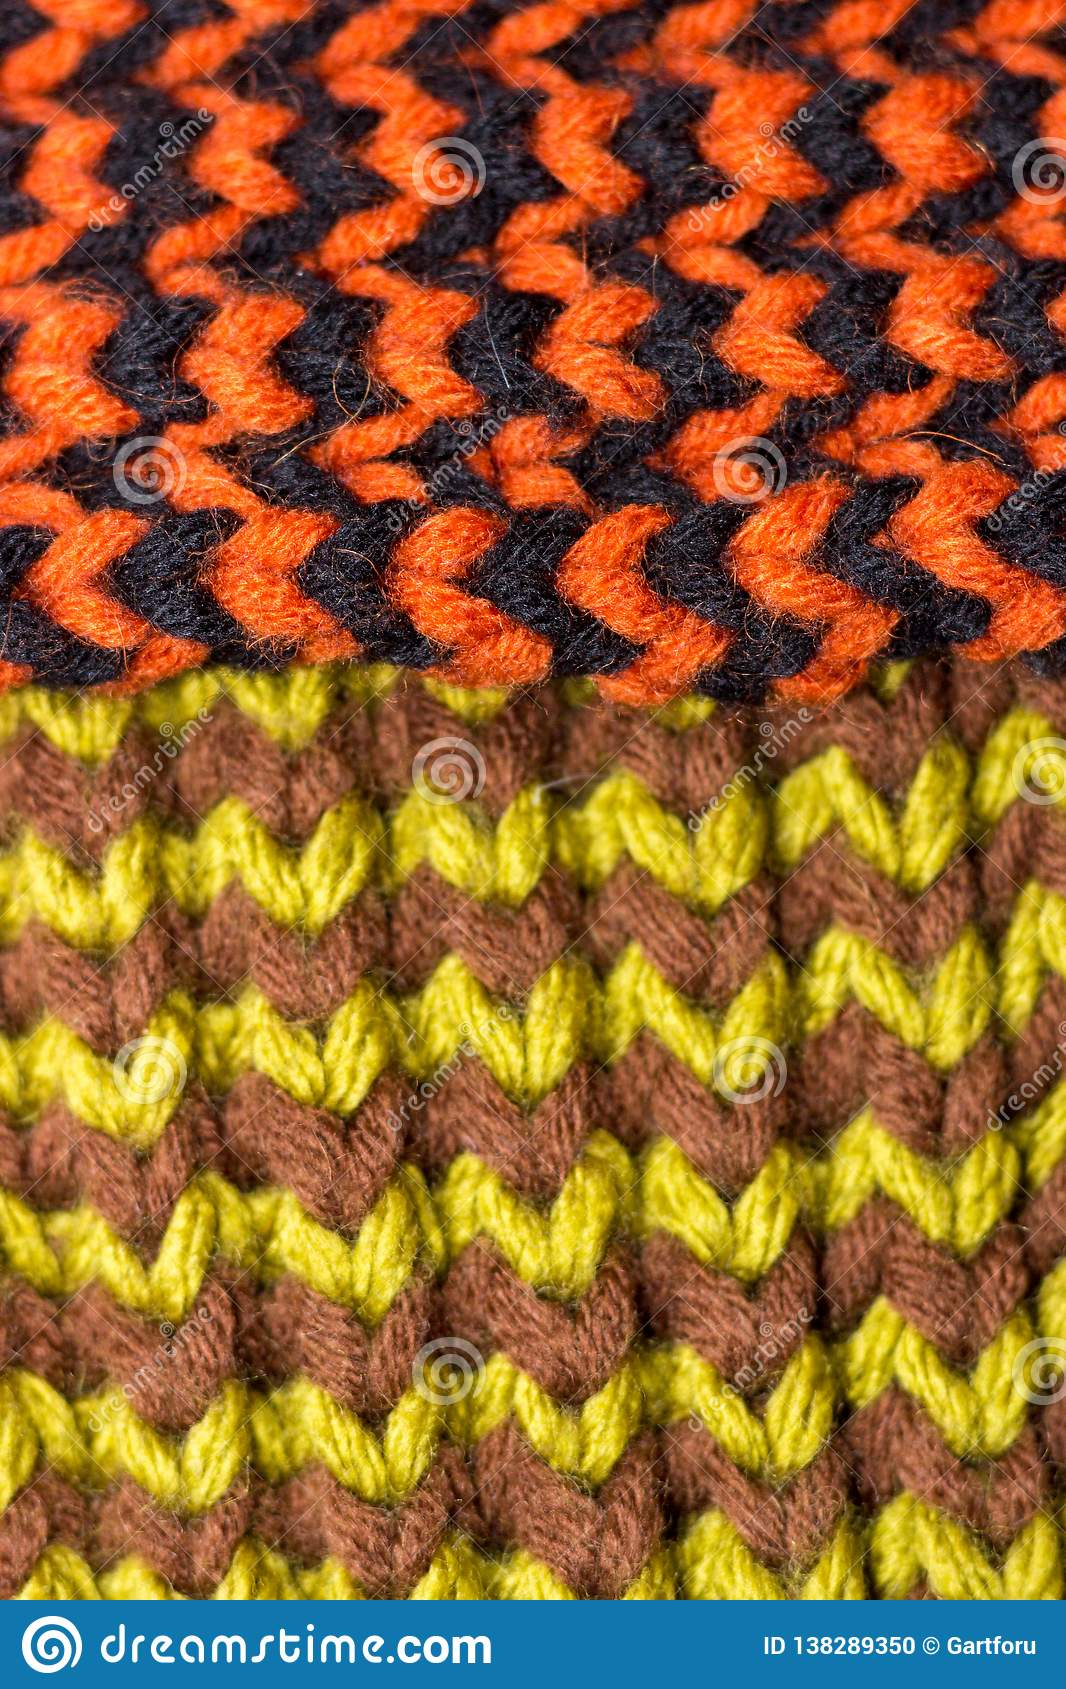 Knitting. Background knitted texture. Bright knitting needles